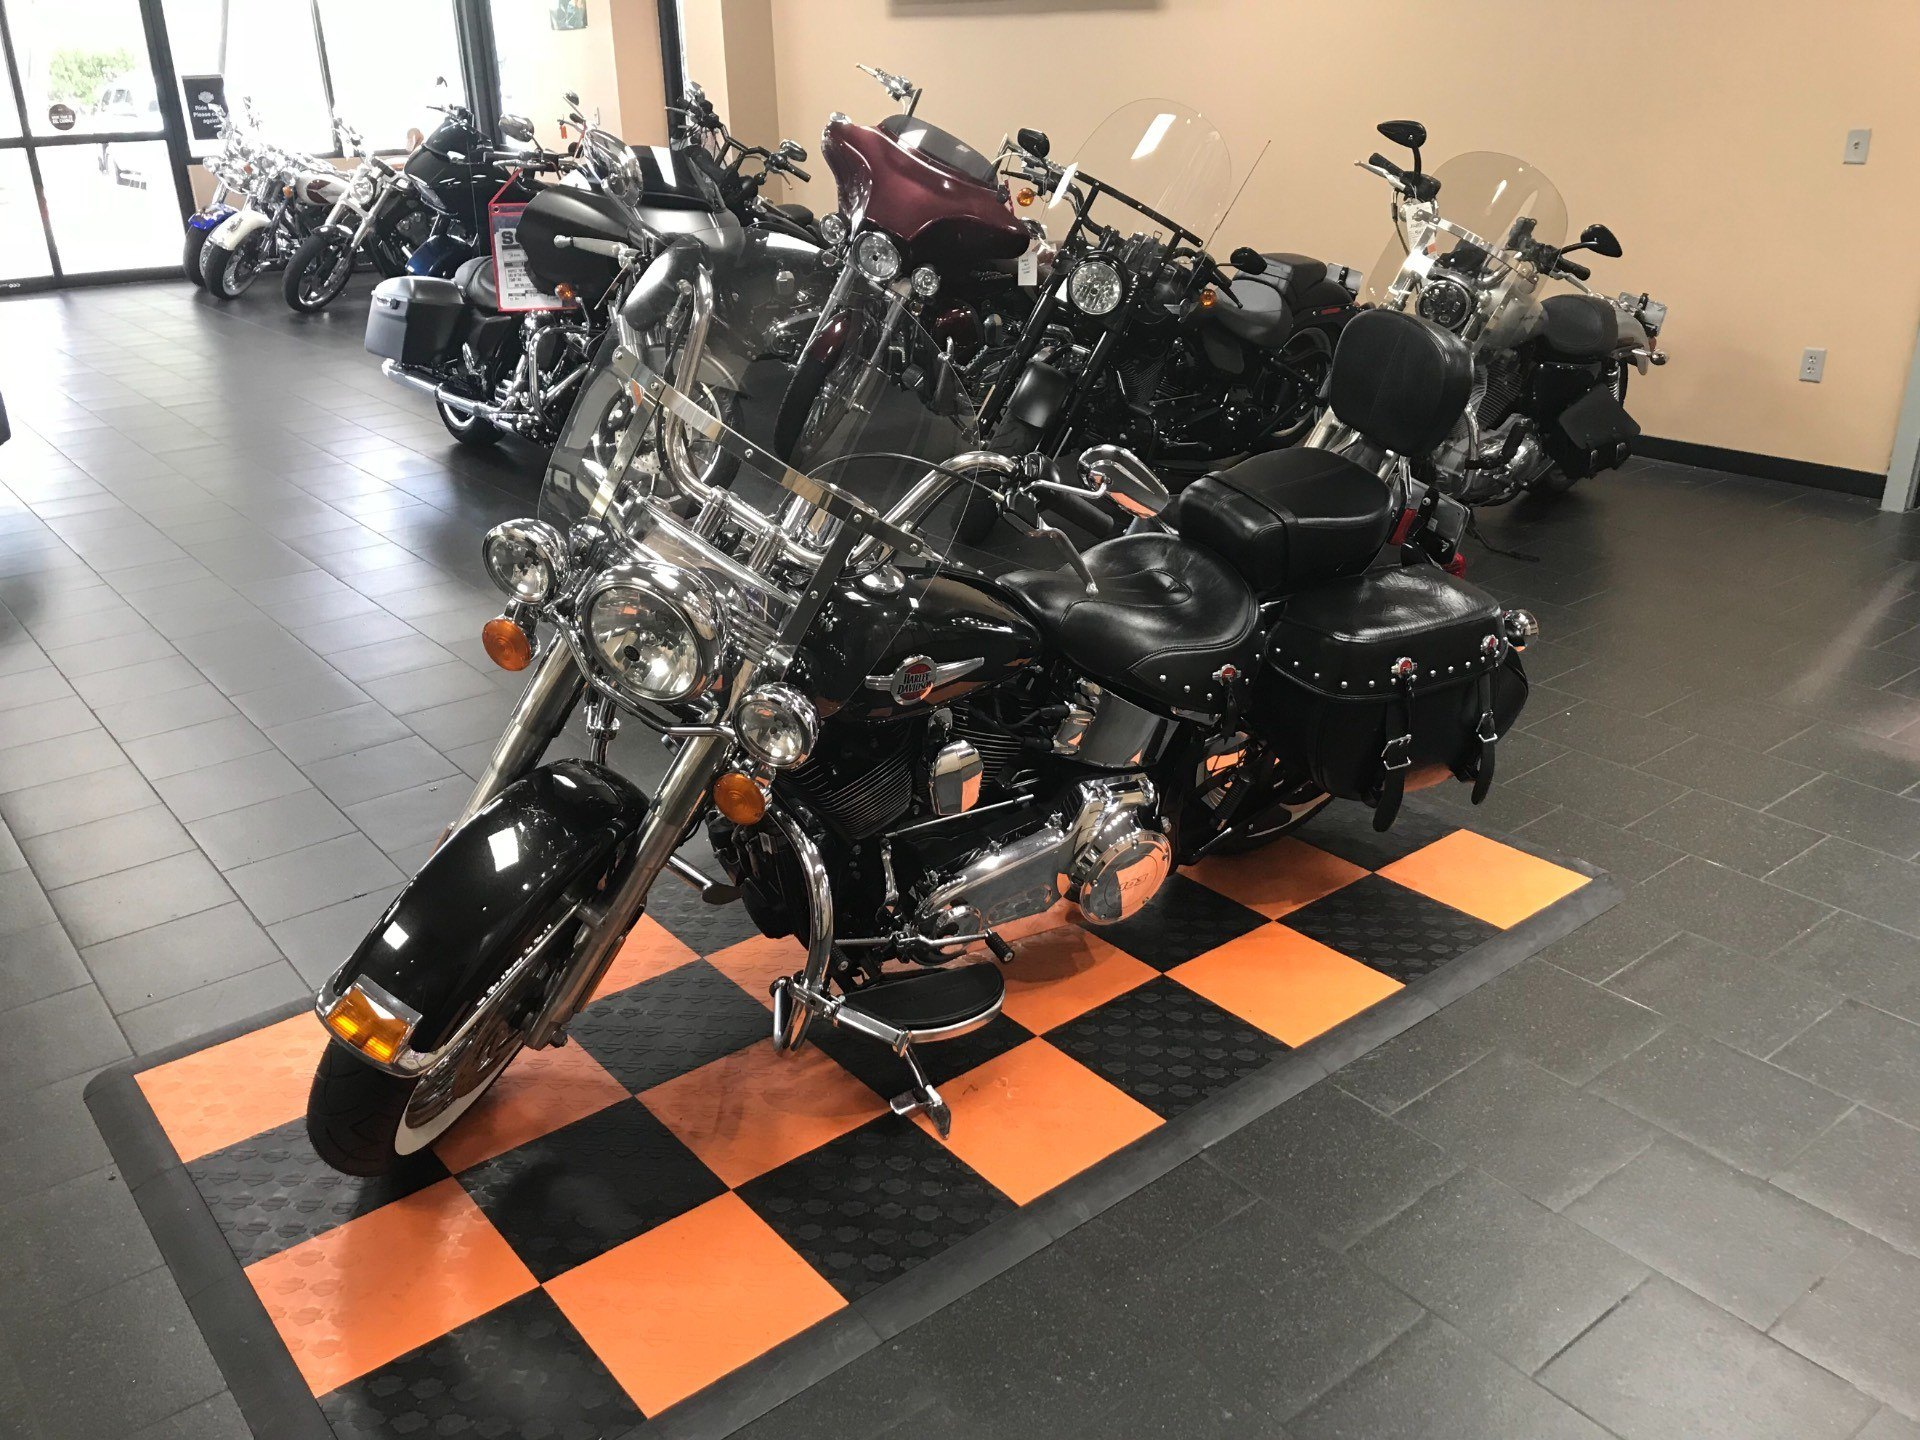 2017 Harley-Davidson Heritage Softail® Classic in The Woodlands, Texas - Photo 8